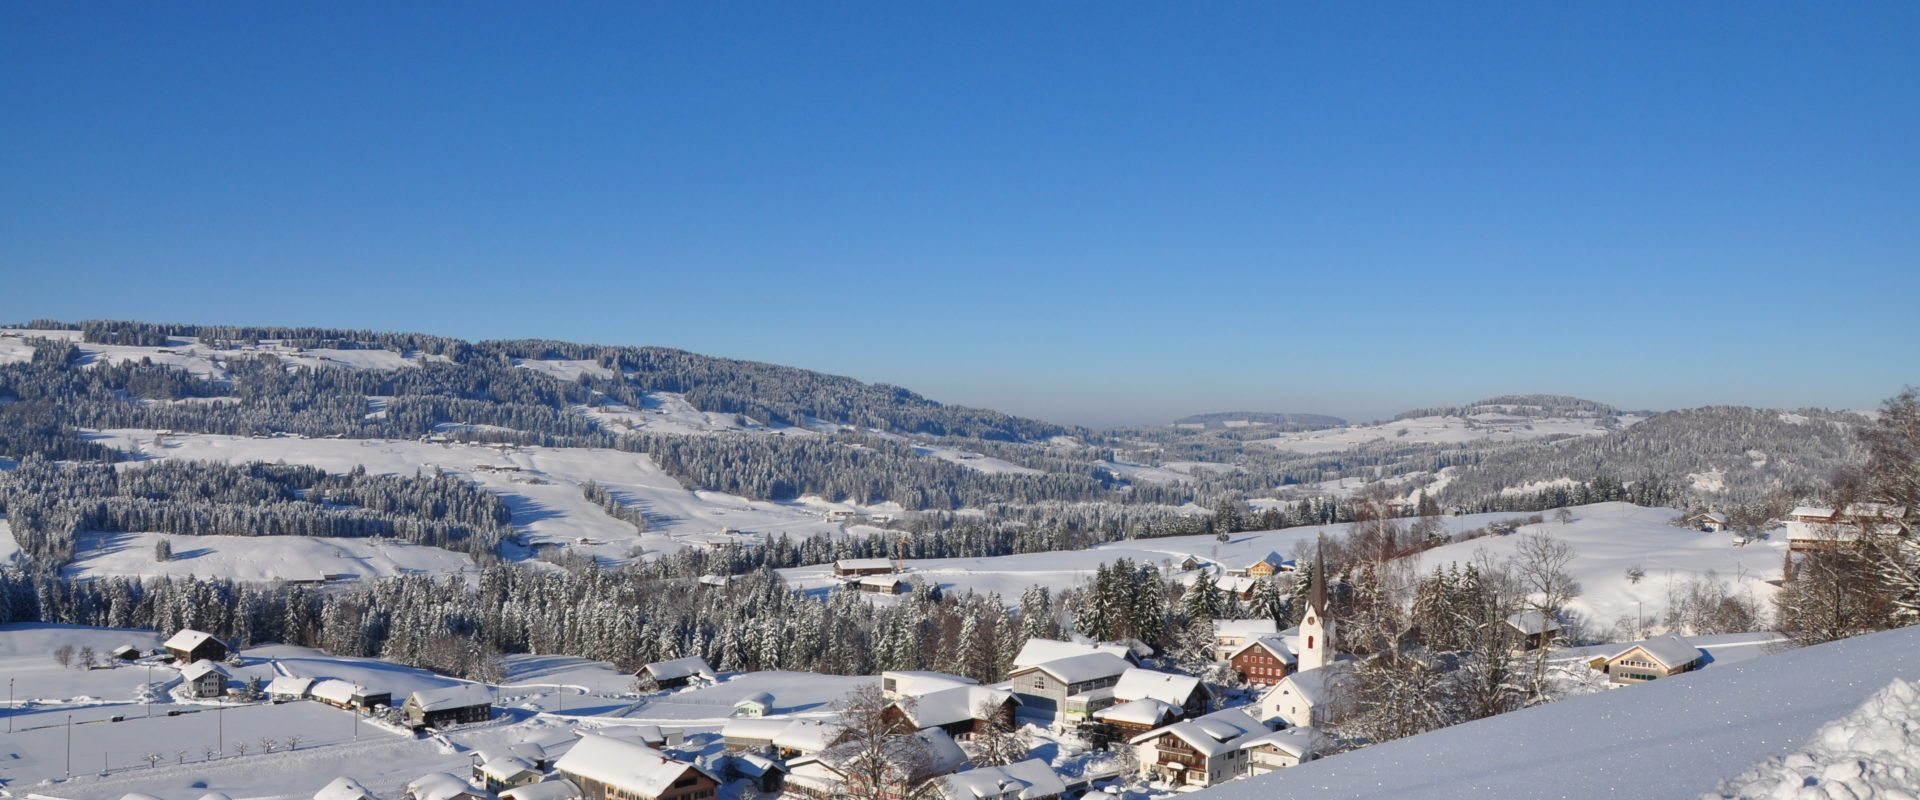 riefensberg_winter